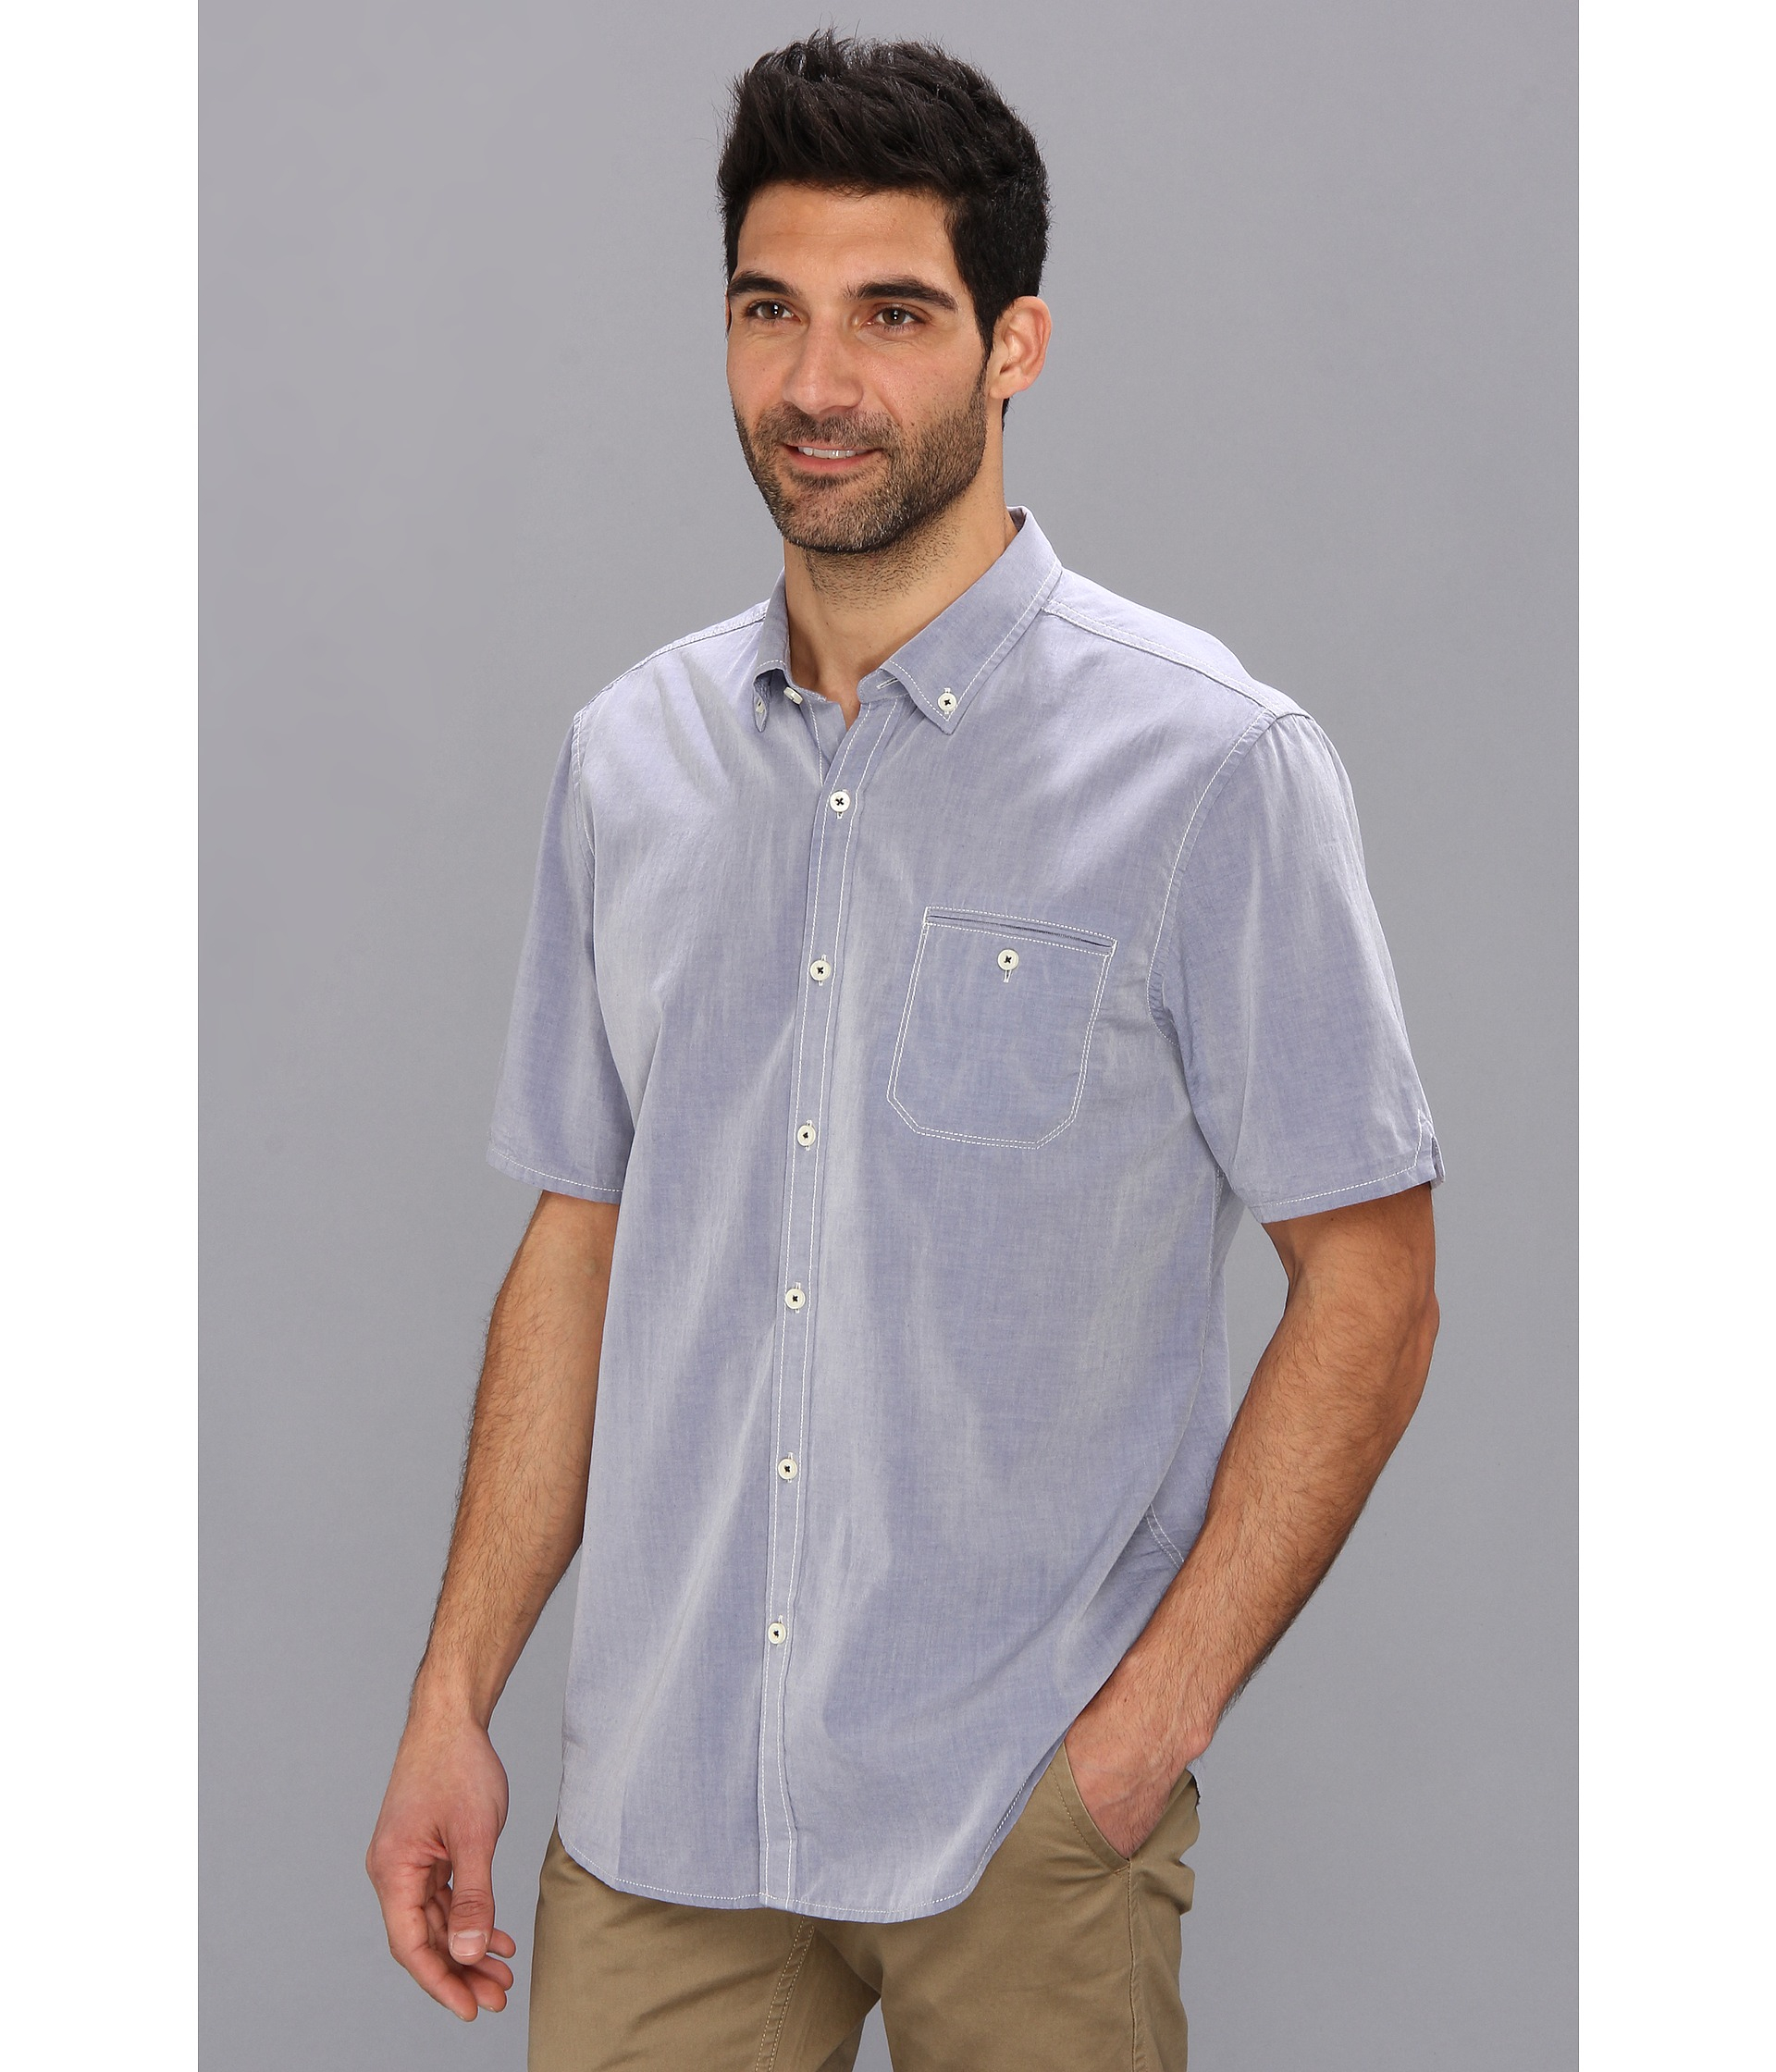 Tommy bahama island modern fit great chambray ss shirt in for Tommy bahama christmas shirt 2014